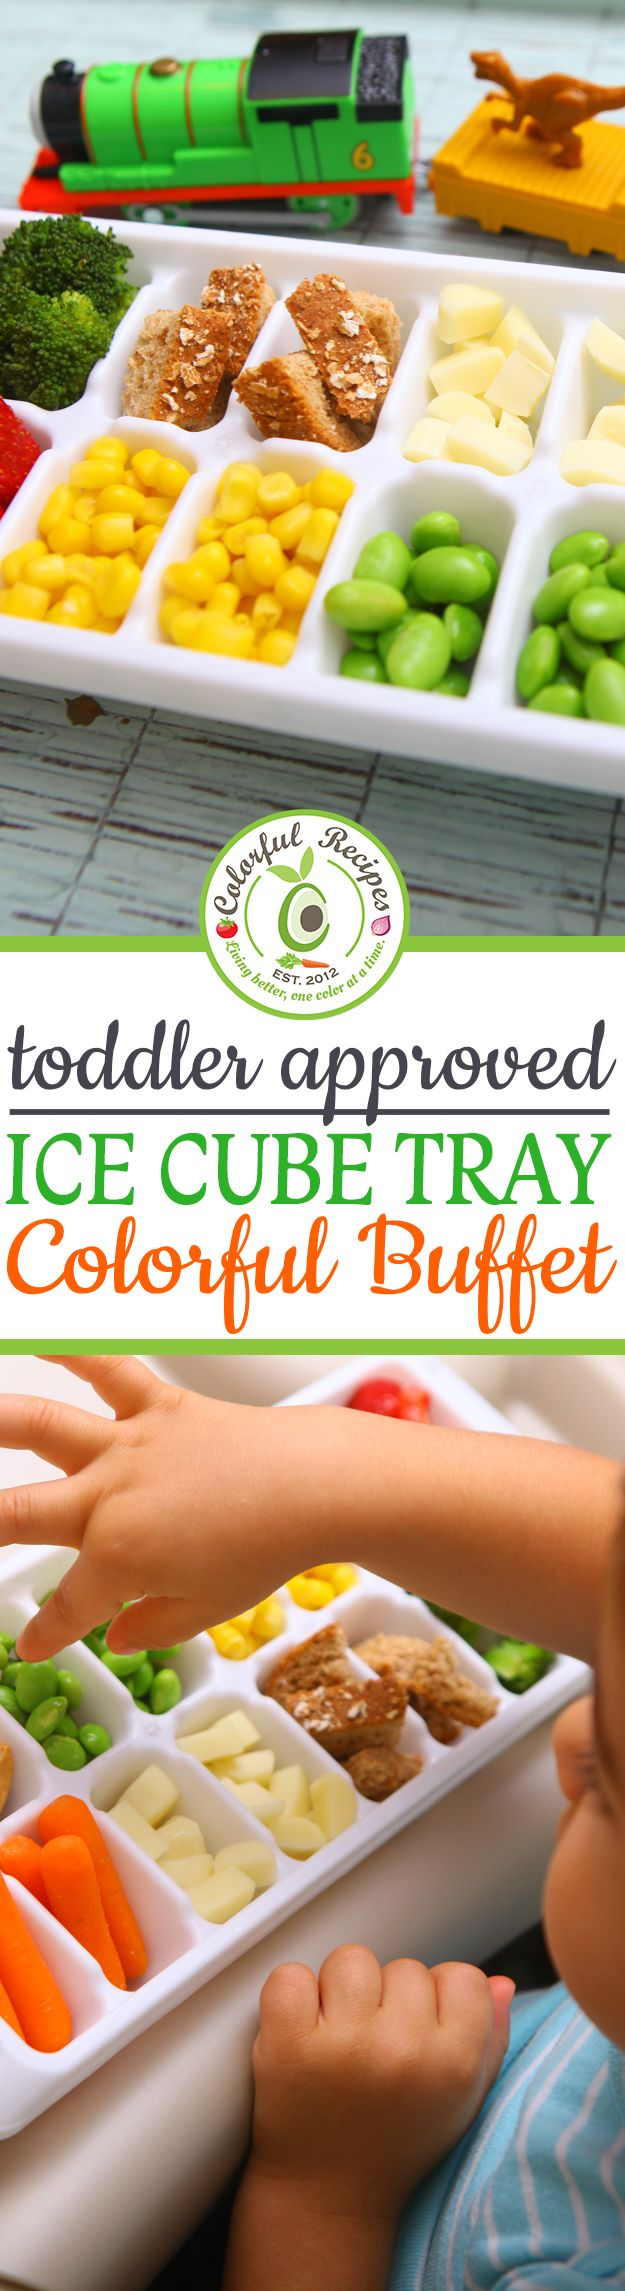 Toddler Approved Ice Cube Tray Colorful Buffet: An easy way to offer your toddler a variety of healthy options at any meal!